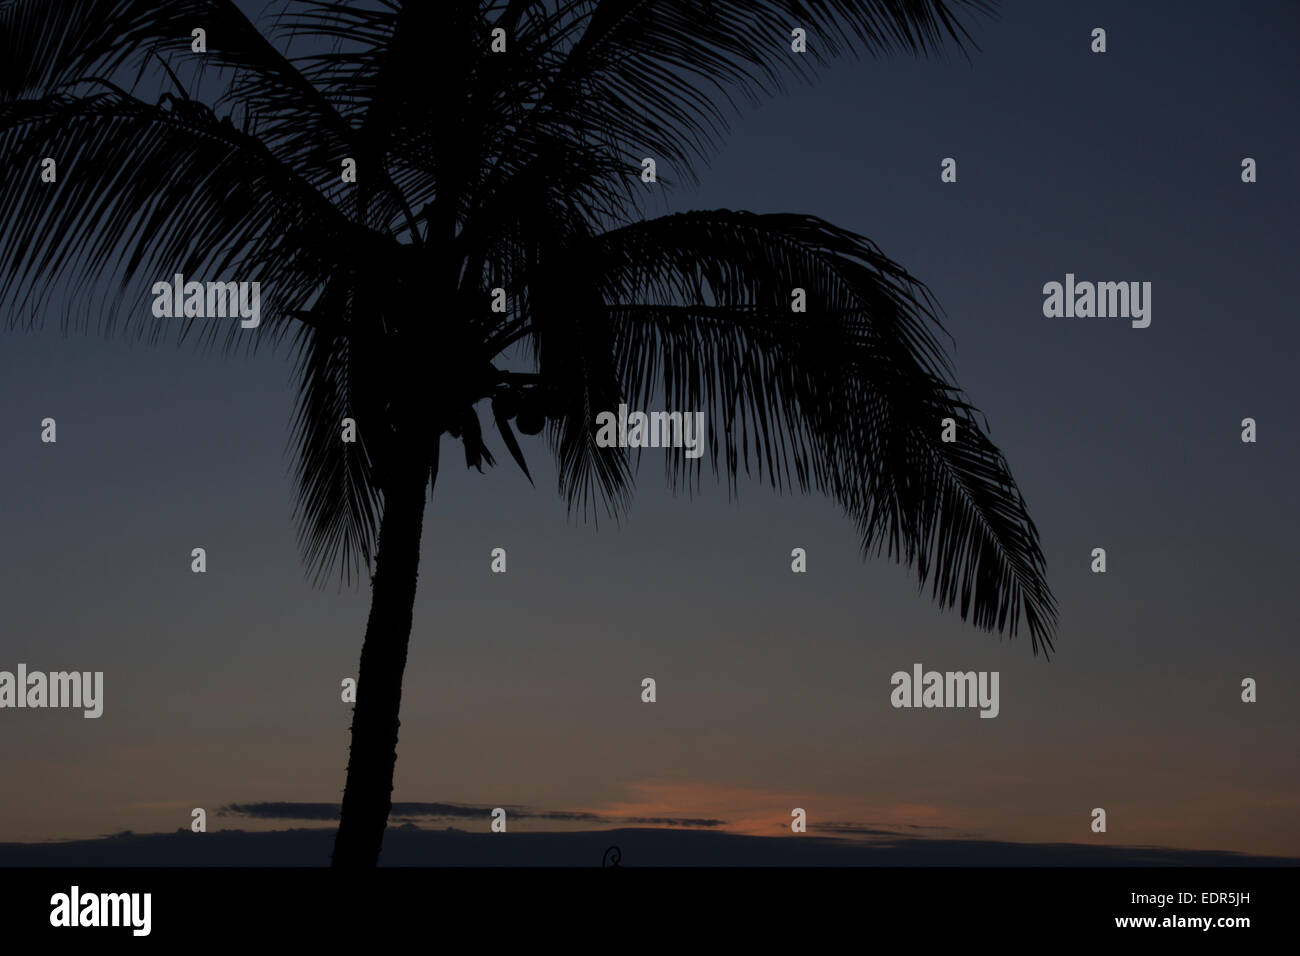 Dawn at the paradise. A Palm tree silhouette at Dawn at the Beach of Baja California. - Stock Image